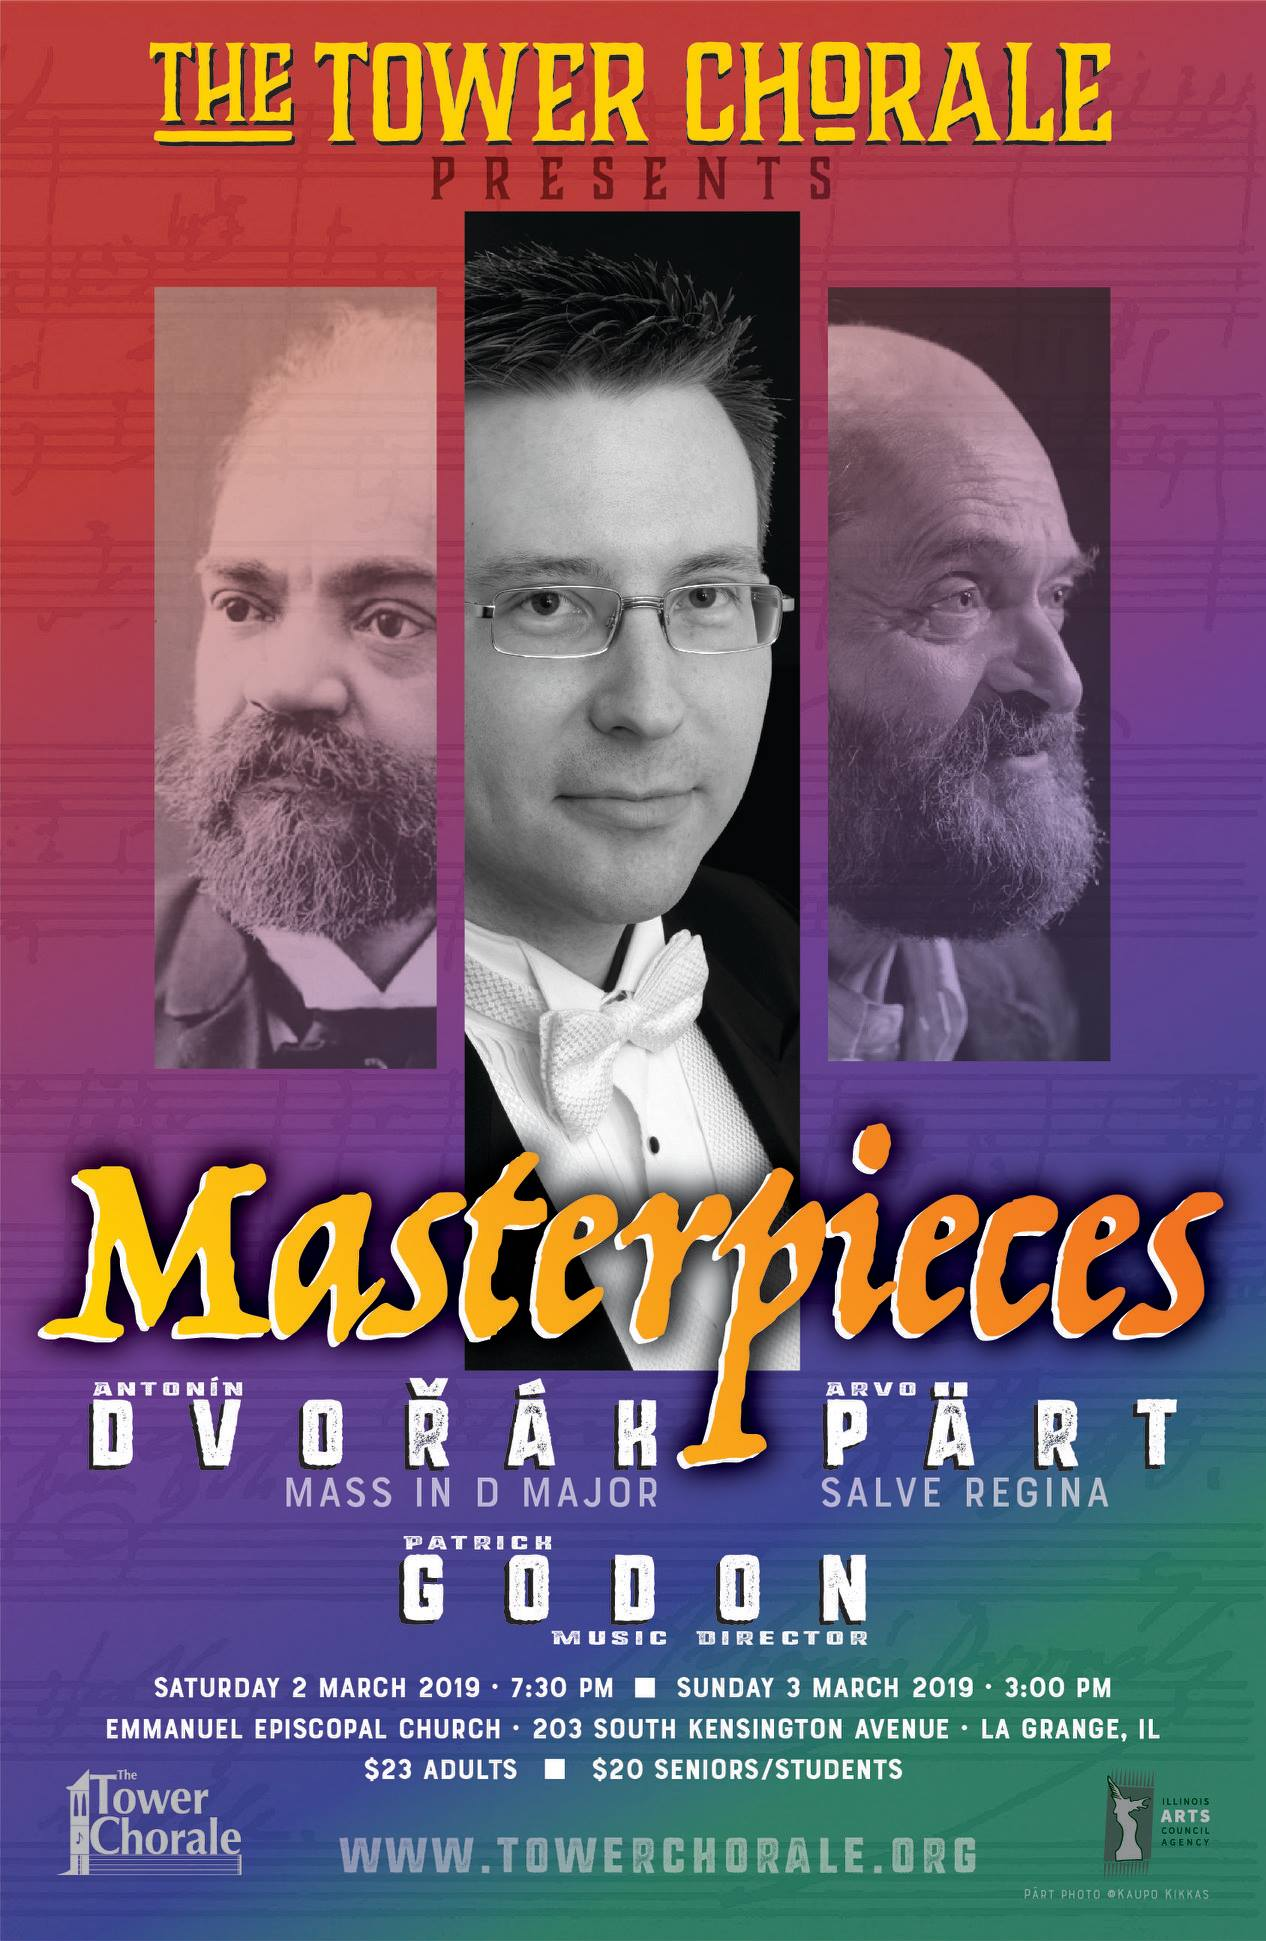 Dvorak Part Masterpieces concert program